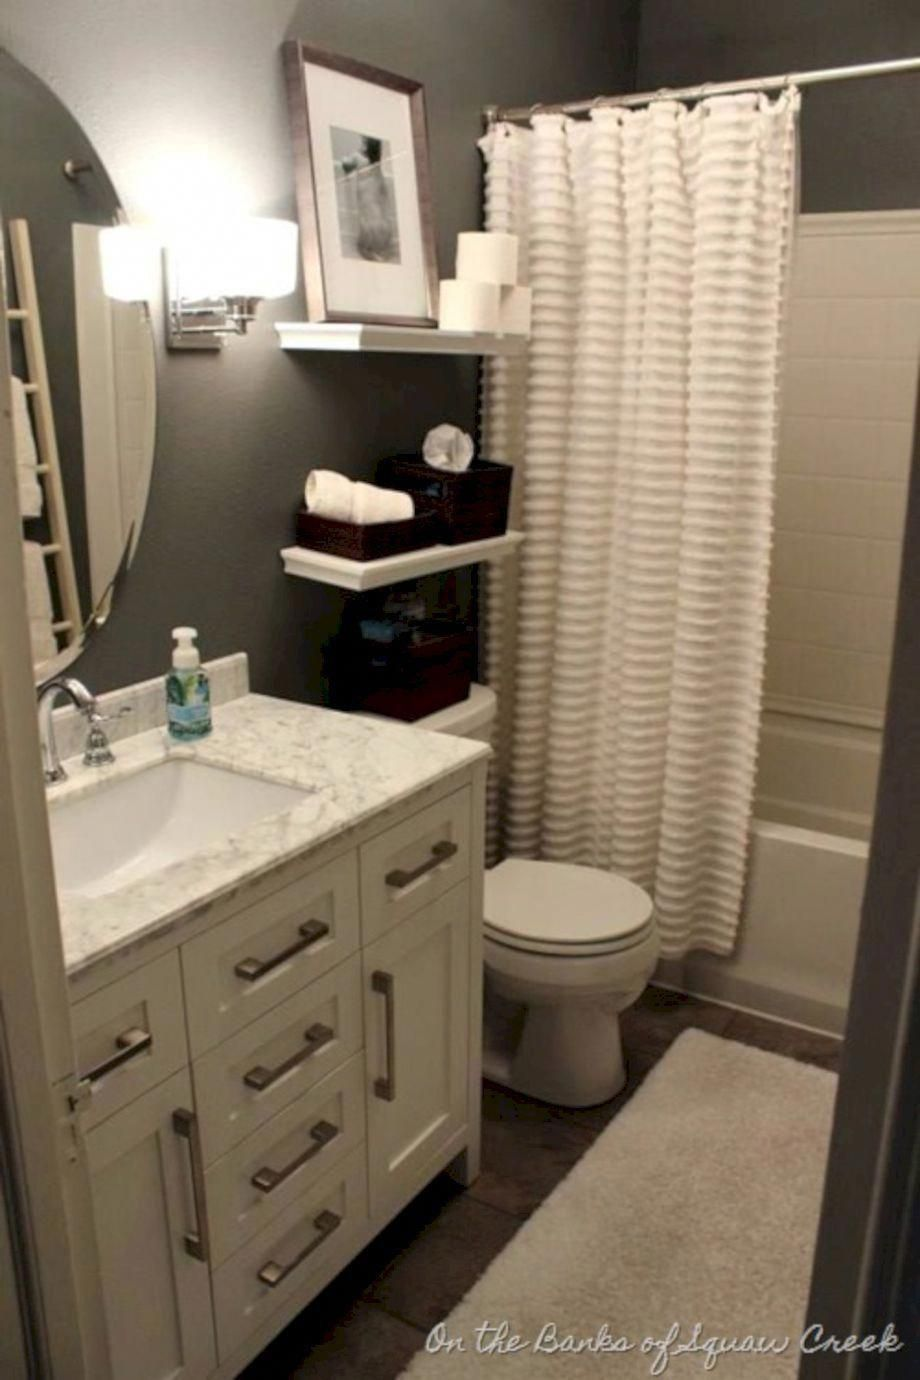 Regardless of the  reality that different  restroom remodeling  jobs  frequently  require different tools, you will find that some tools can be used on  practically all bathroom remodeling  jobs. It  may be a  excellent idea to keep these tools, which are  noted below, on hand at all times. #bathroomremodelbudget #differentbathroomdesignsforsmallbathrooms #restroomremodel Regardless of the  reality that different  restroom remodeling  jobs  frequently  require different tools, you will find that #restroomremodel